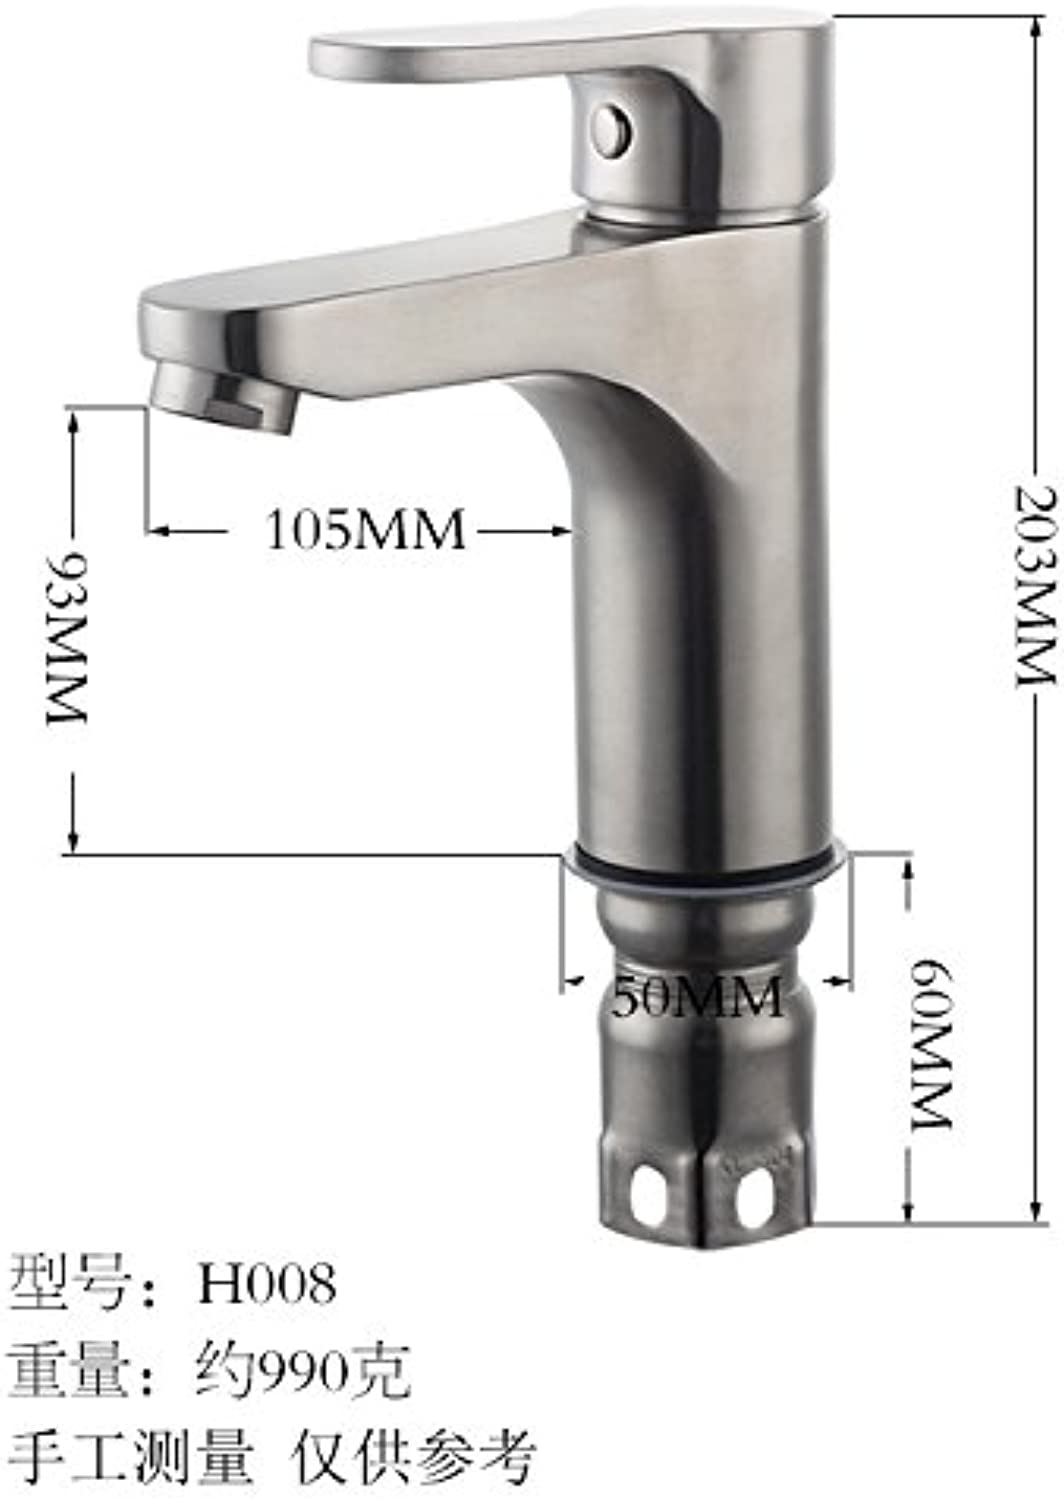 Bijjaladeva Antique Bathroom Sink Vessel Faucet Basin Mixer Tap Table tub faucet 304 brushed stainless steel basin water cooling tower basins taps H008